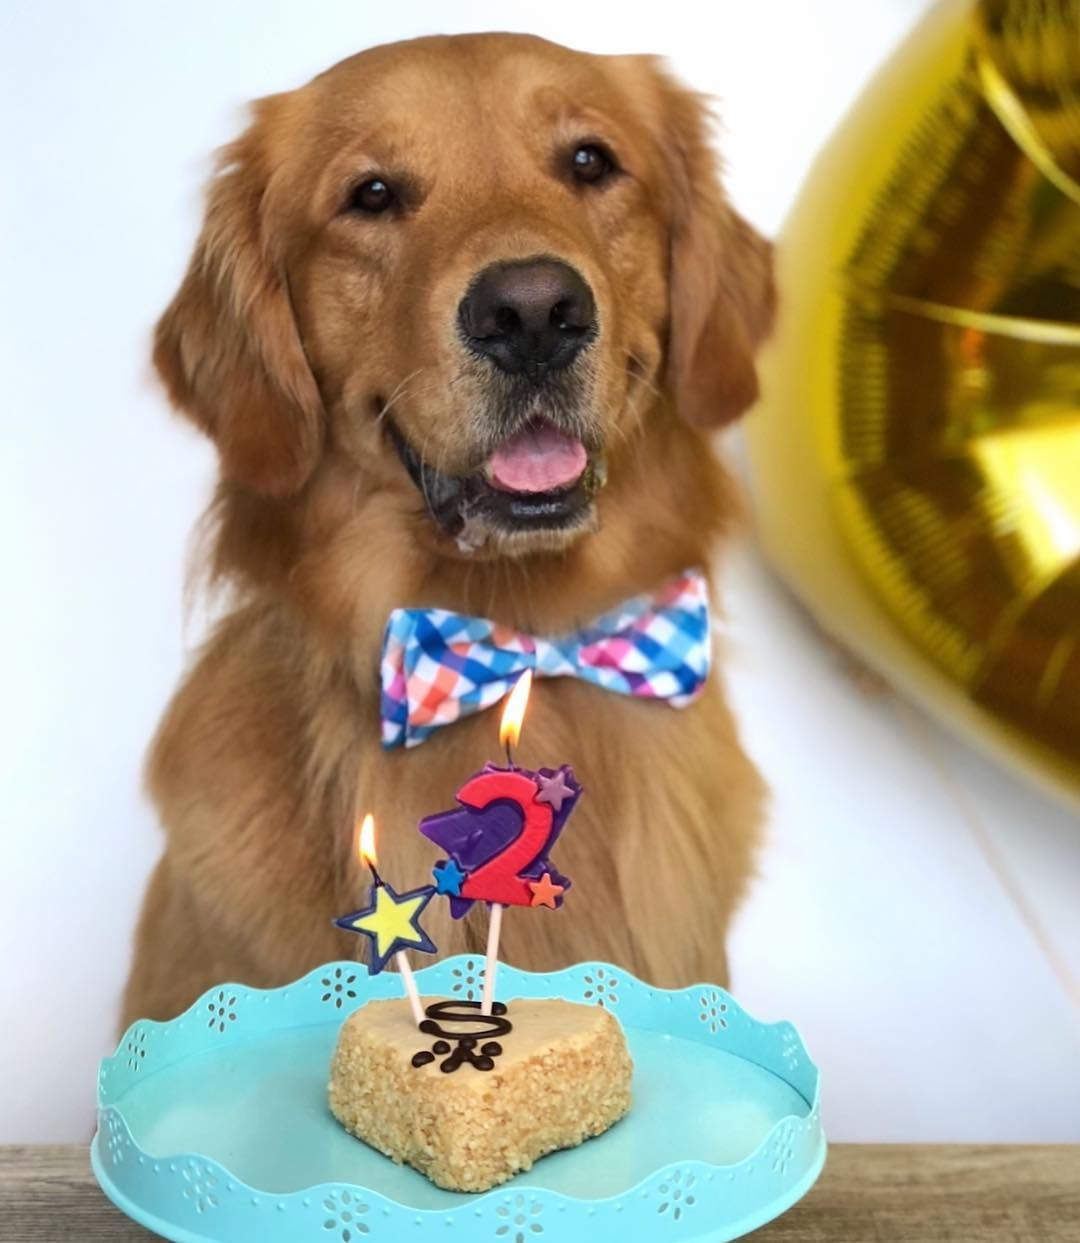 This Is The Way You Eat A Birthday Cake Dogs Golden Retriever